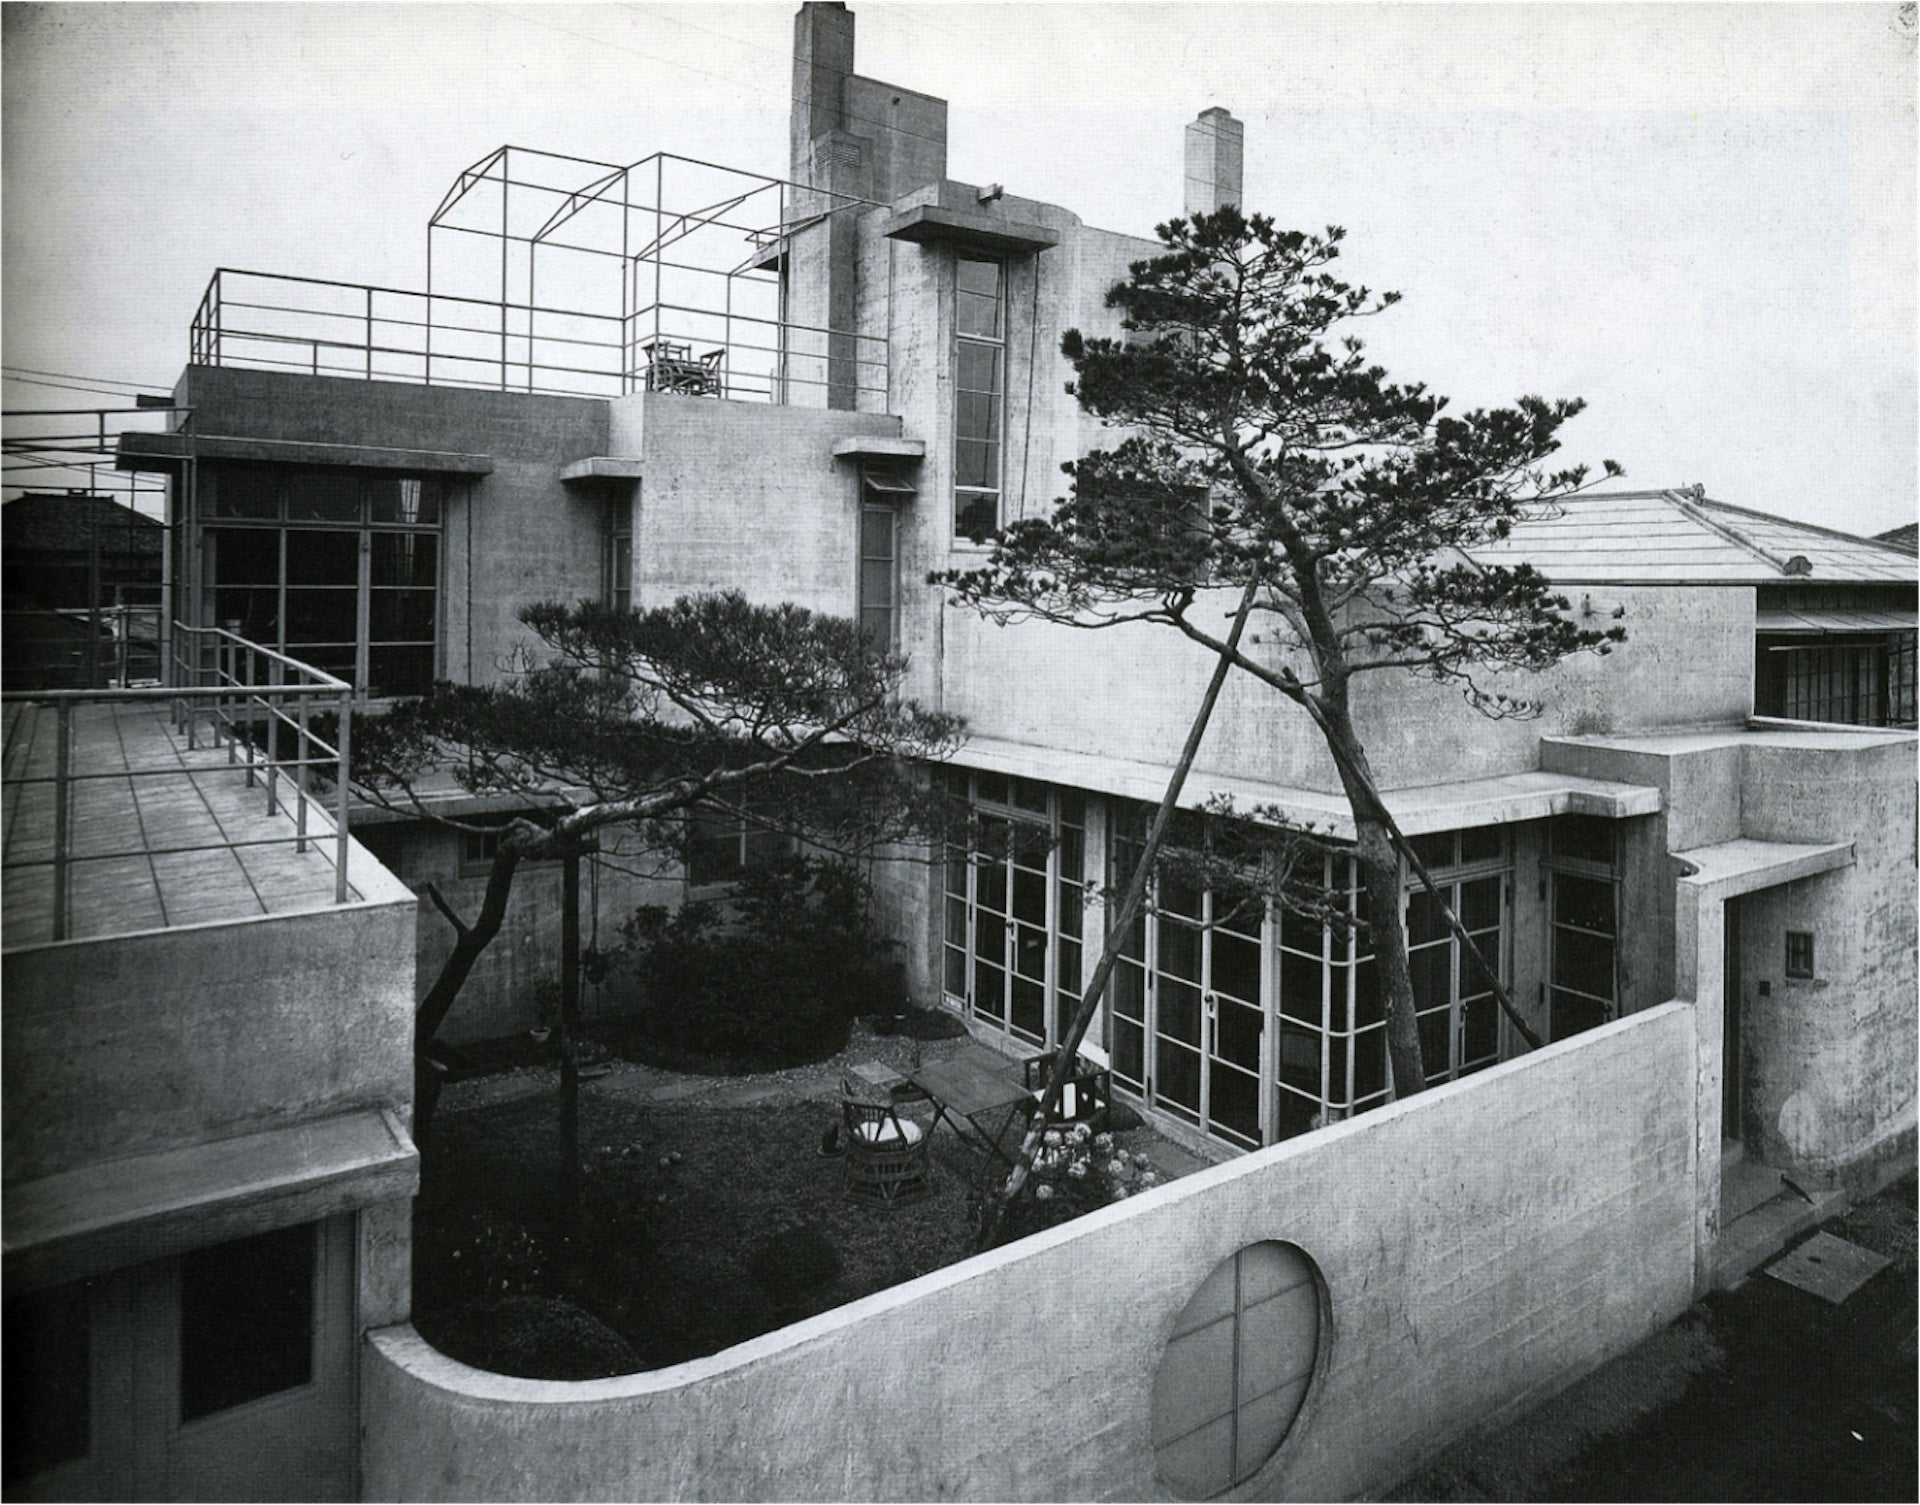 In 1924, Antonin and Noémi Raymond constructed their home, the Reinanzaka House in Tokyo, the first modern concrete house in Japan. Photo © Creative Commons